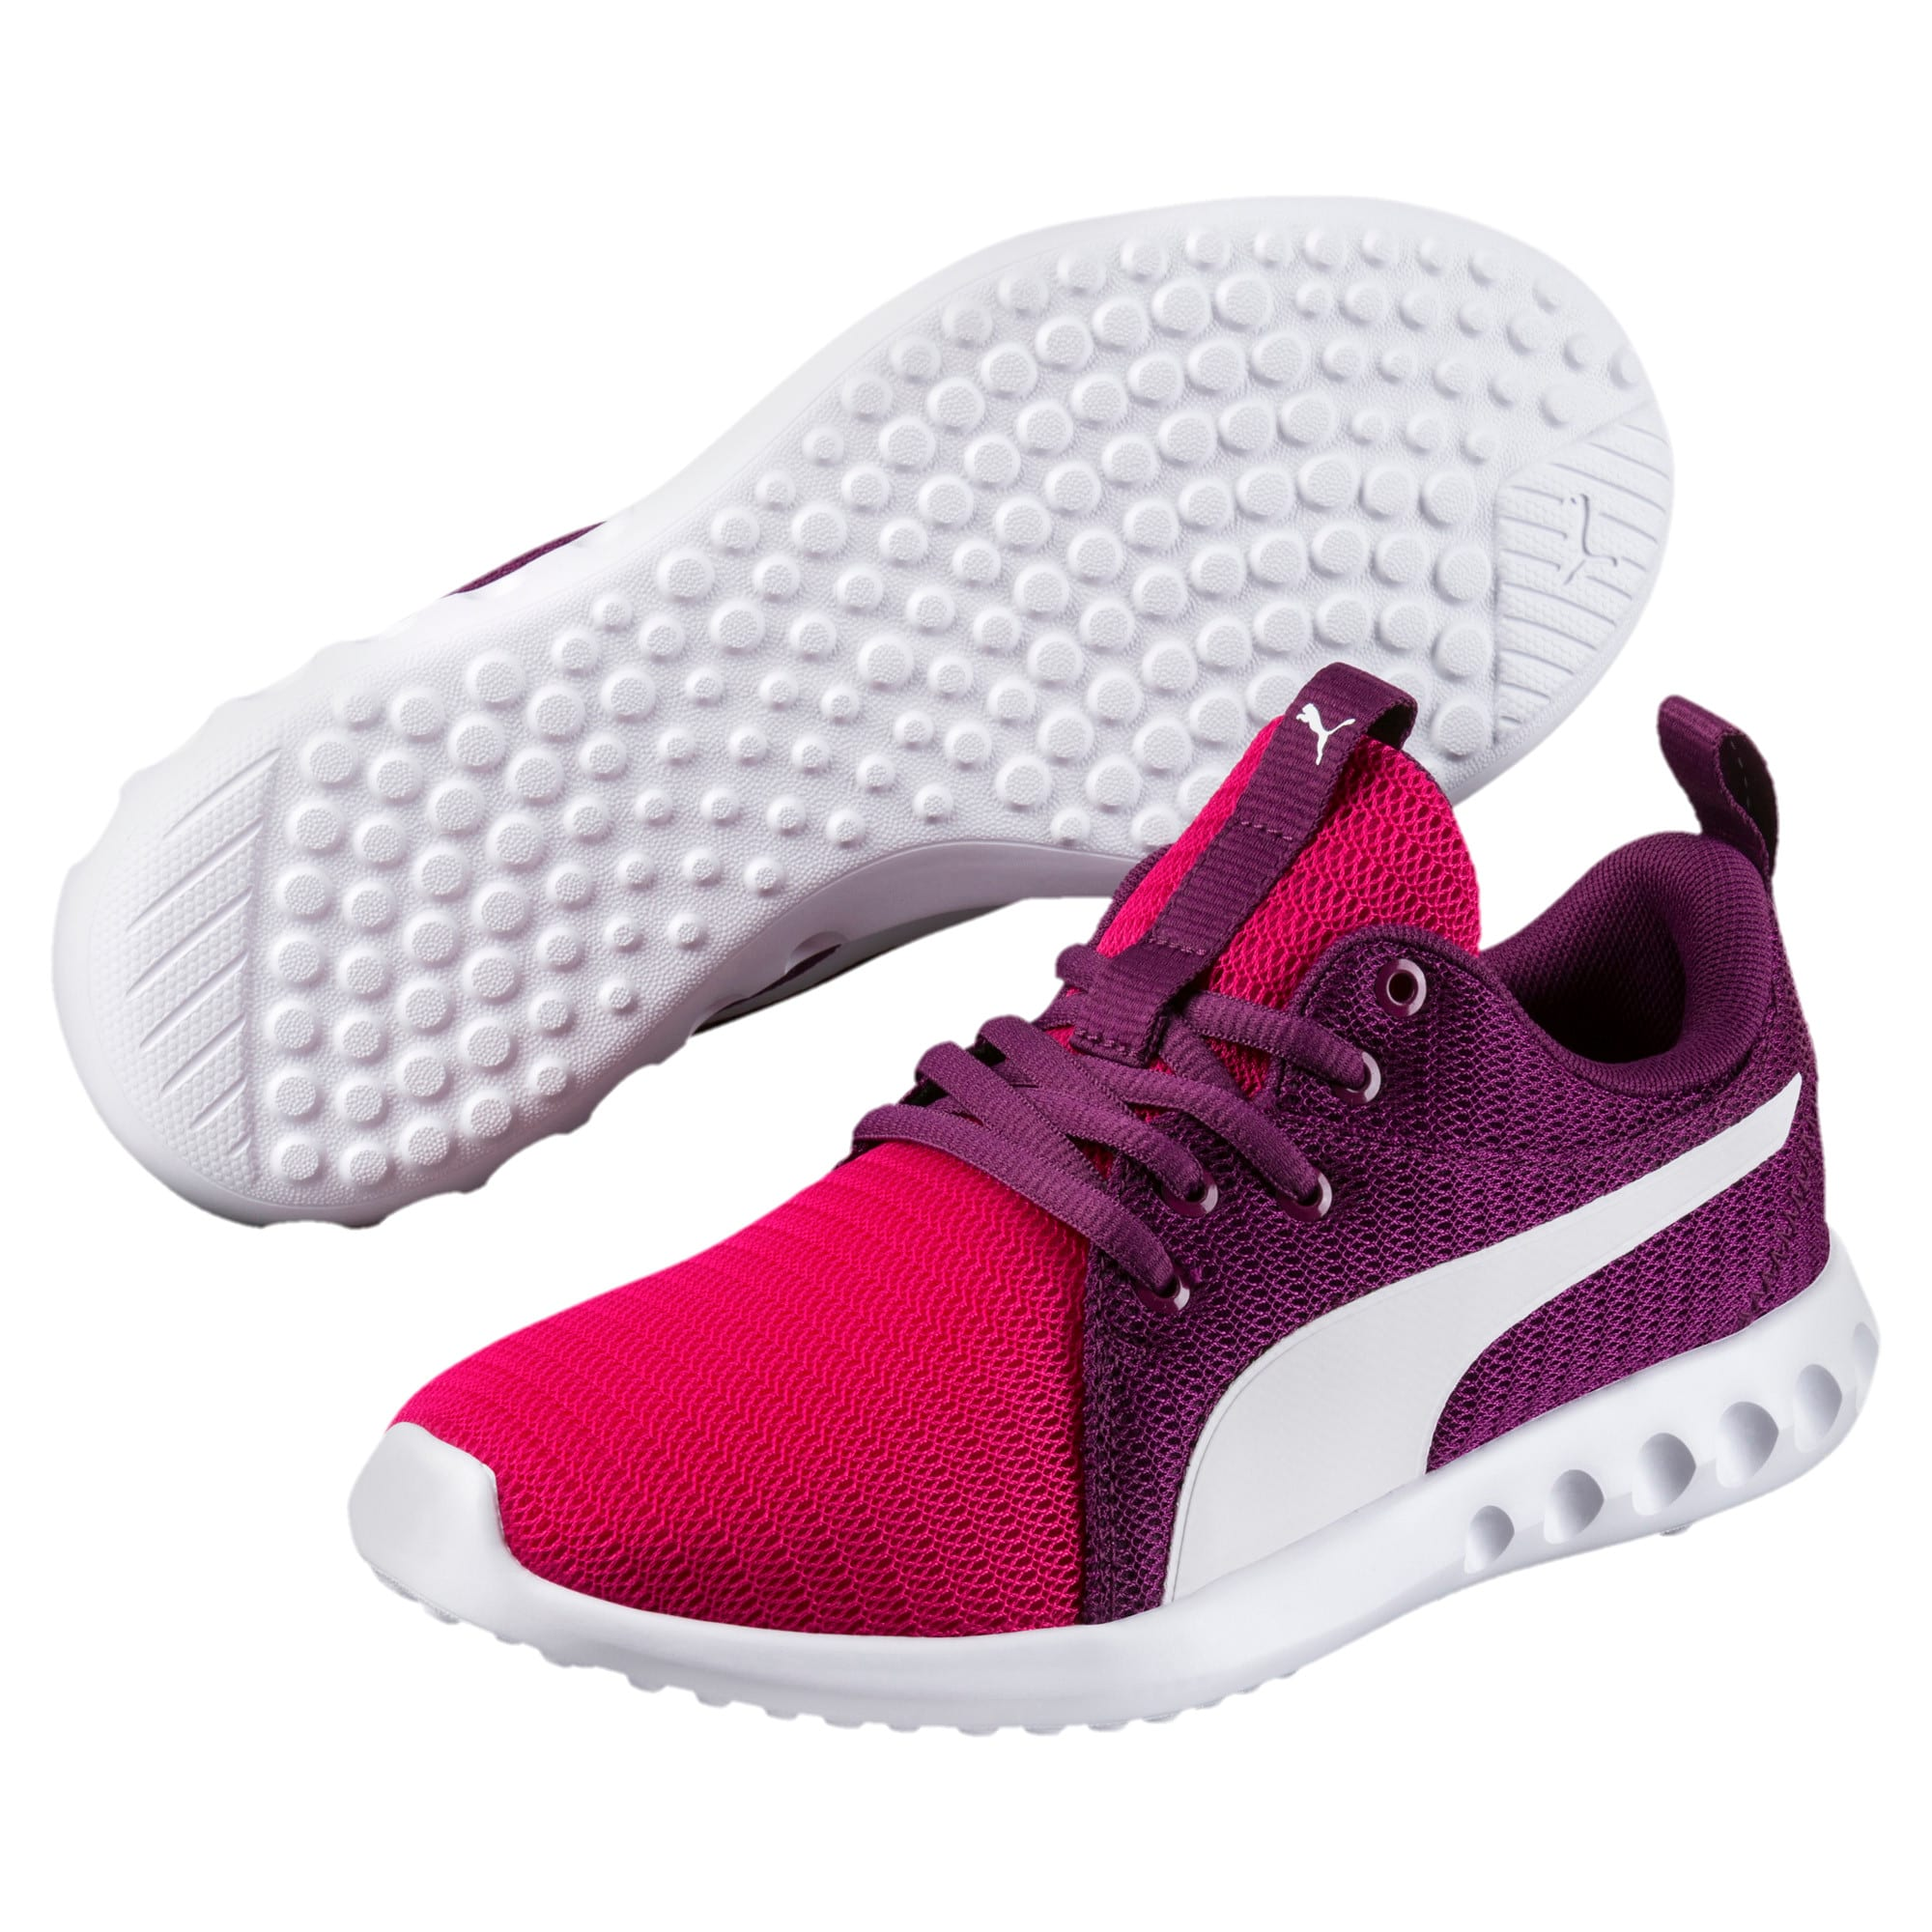 Thumbnail 2 of Carson 2 Youth Trainers, Love Potion-Puma White, medium-IND